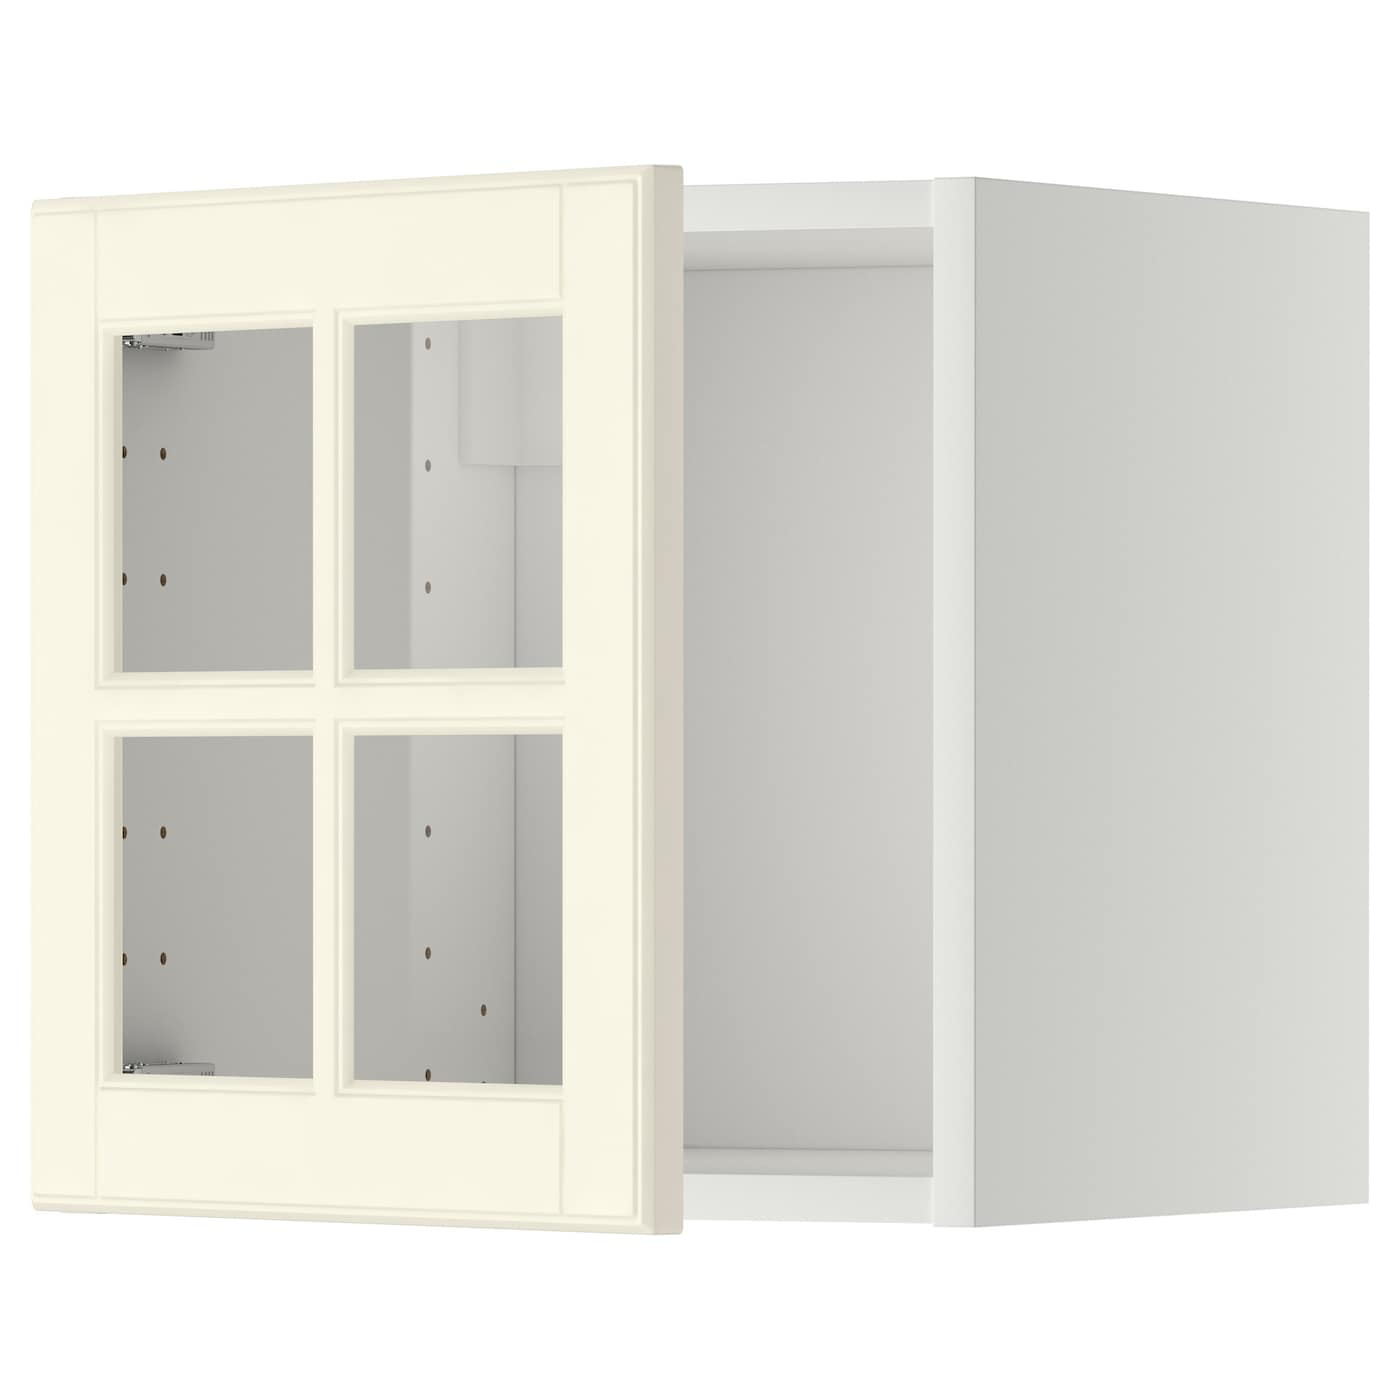 Metod Wall Cabinet With Glass Door Whitebodbyn Off White 40 X 40 Cm